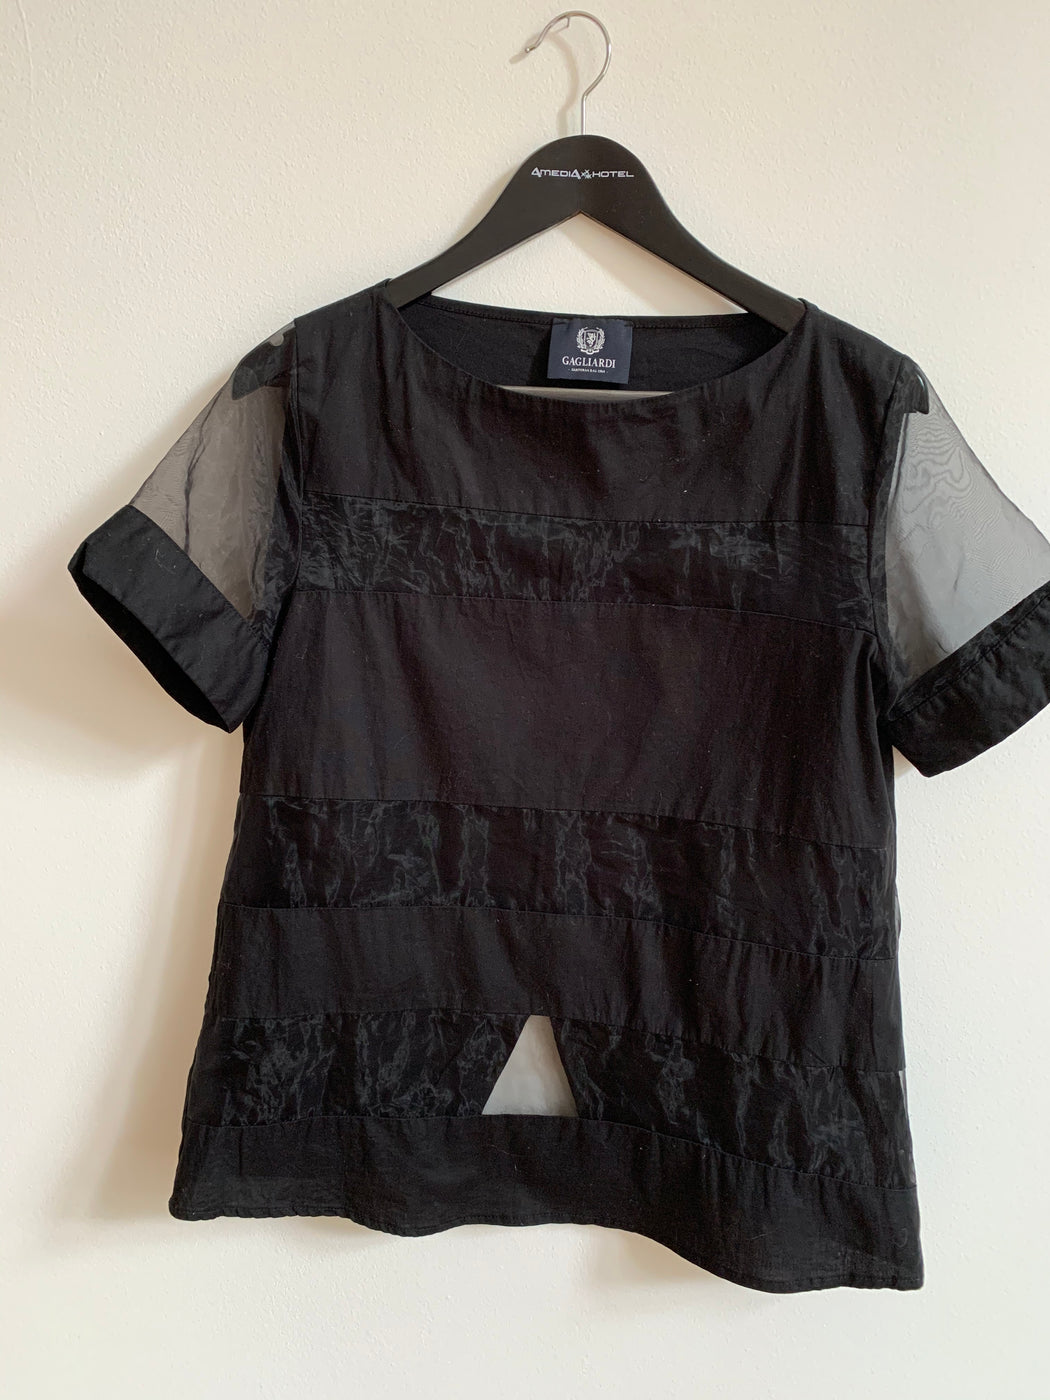 Black Cotton / Acrylic Mix Vintage Top short sleeve Conceptual Detail Sheer